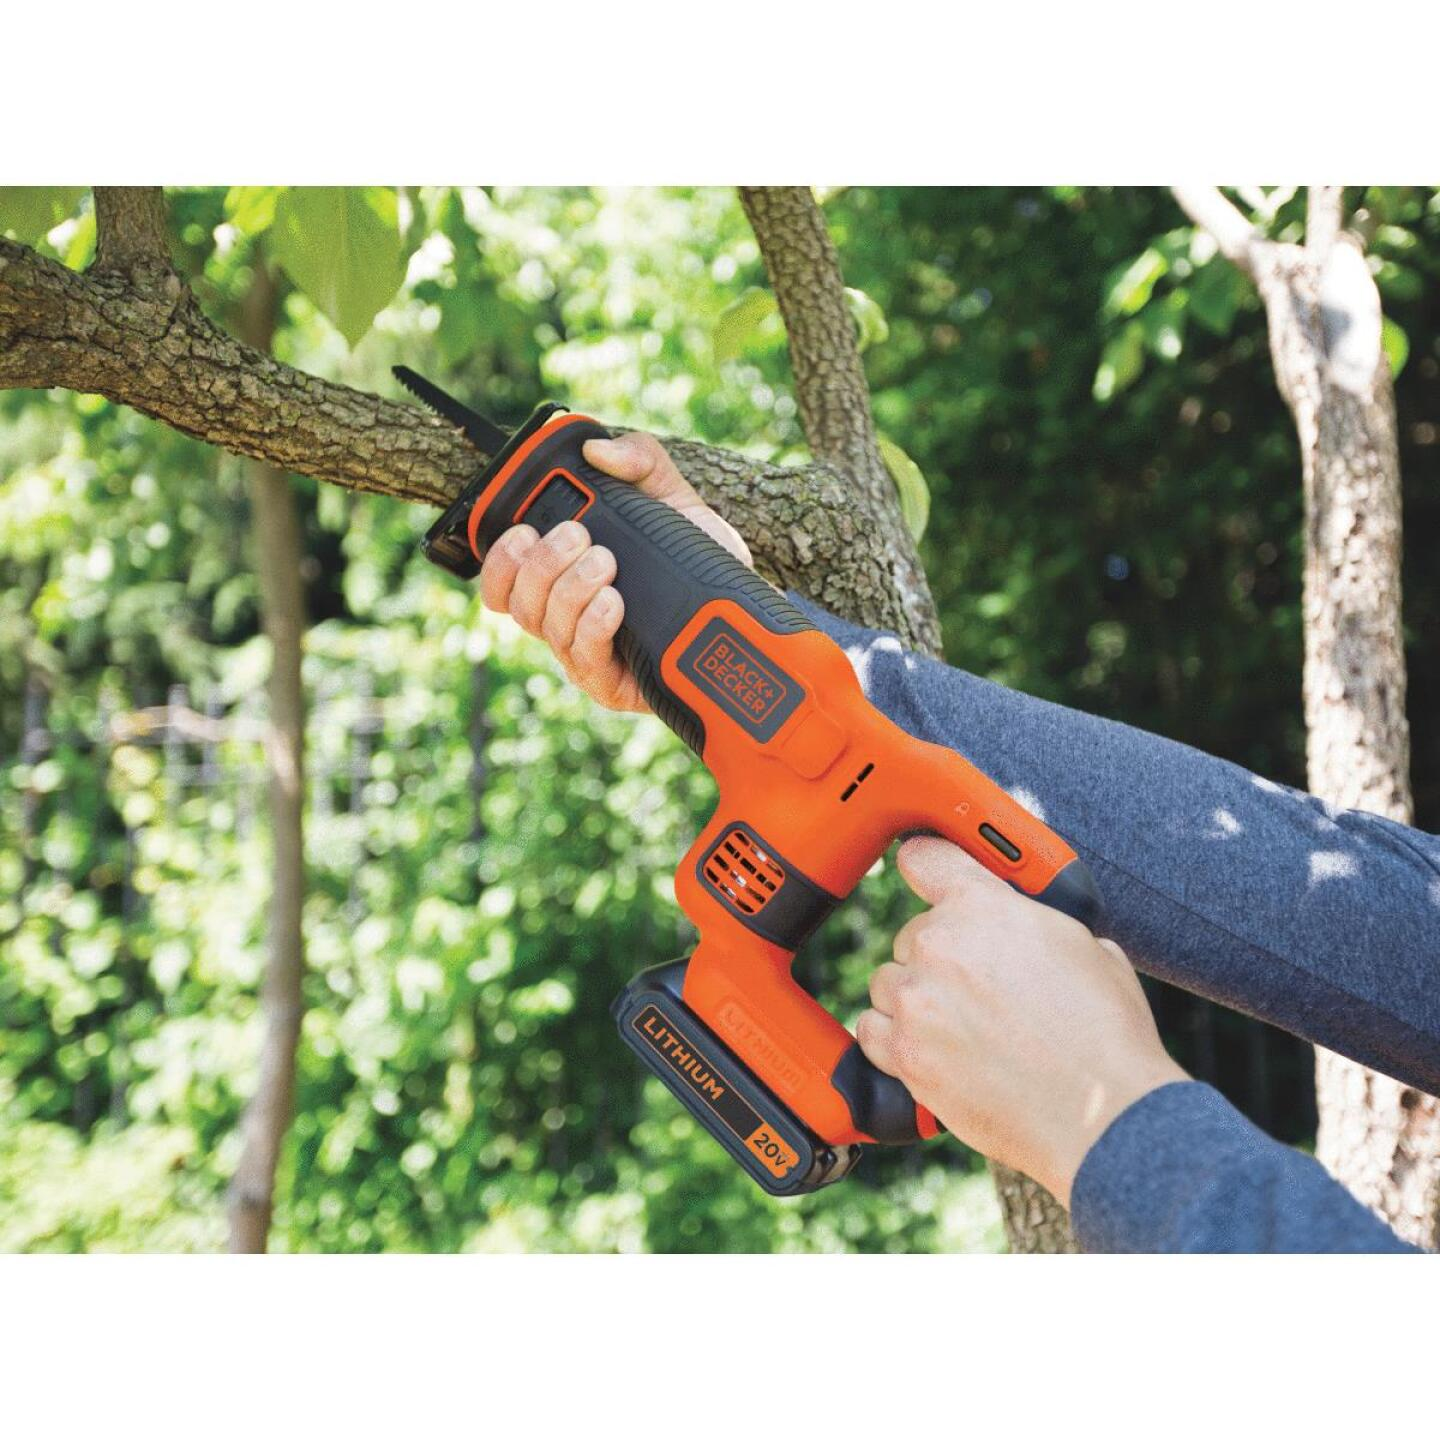 Black & Decker 20 Volt MAX Lithium-Ion Cordless Reciprocating Saw Kit Image 2